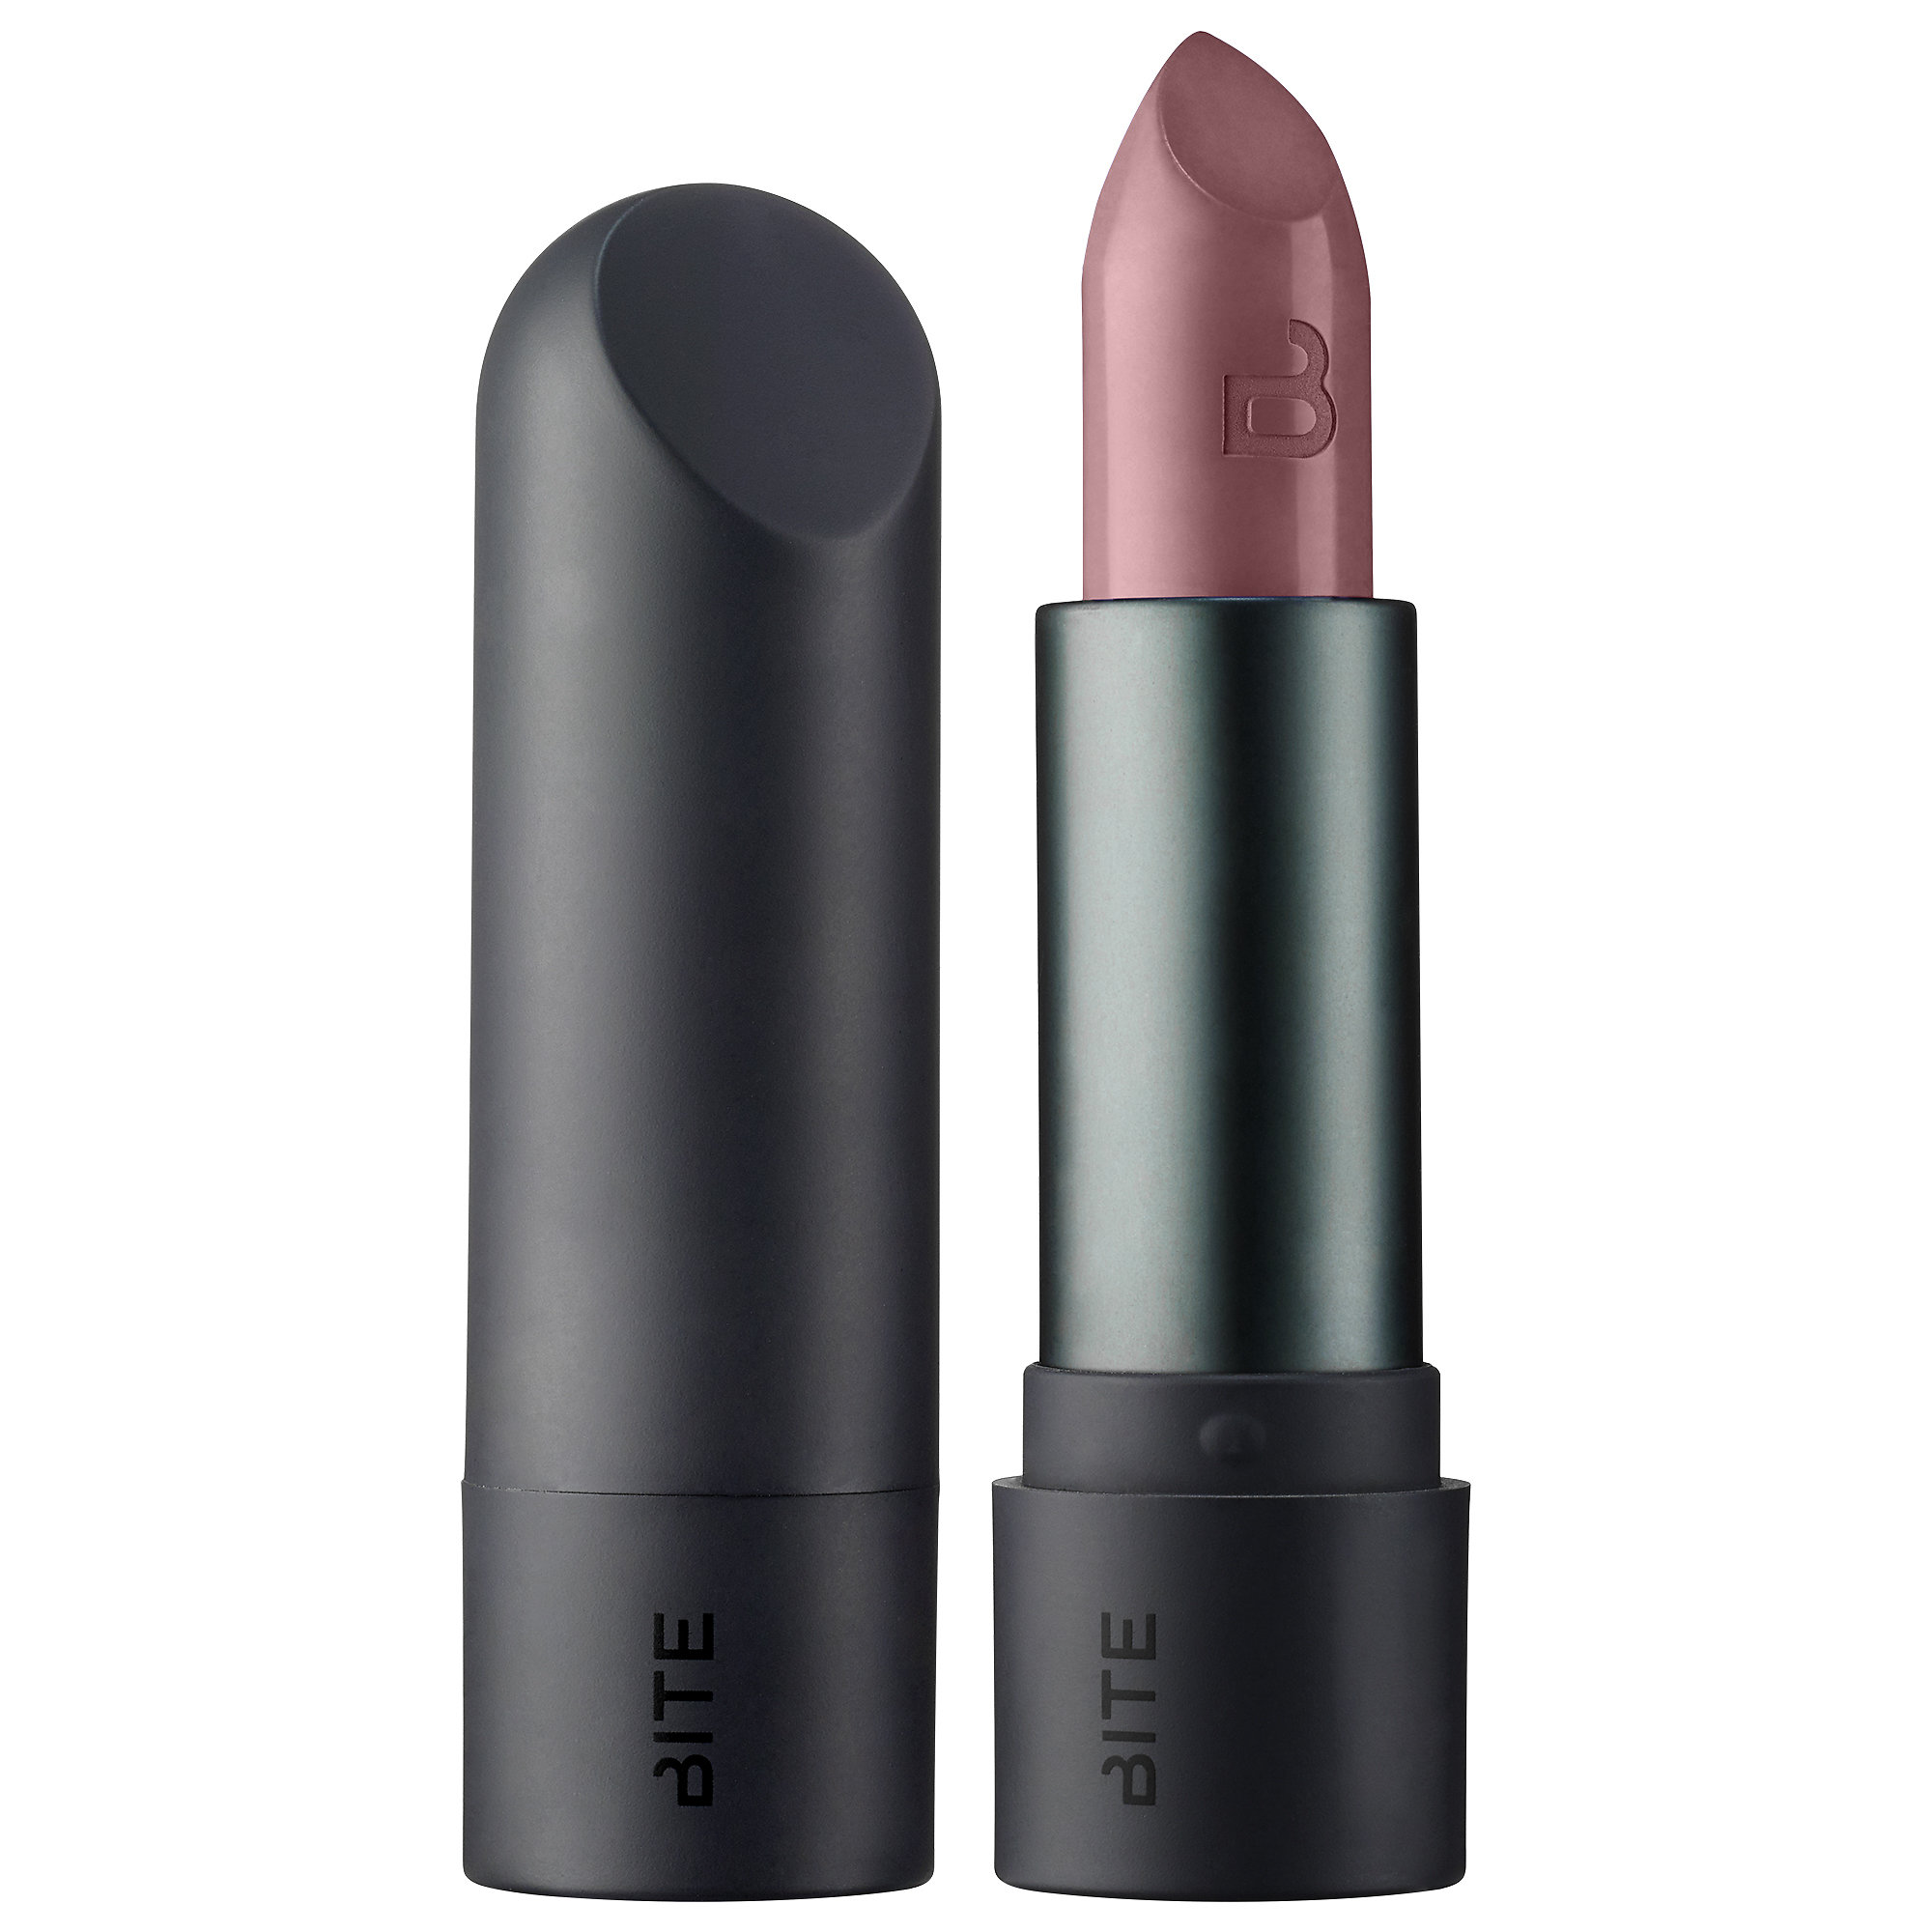 Bite Beauty Amuse Bouche thistle lipstick